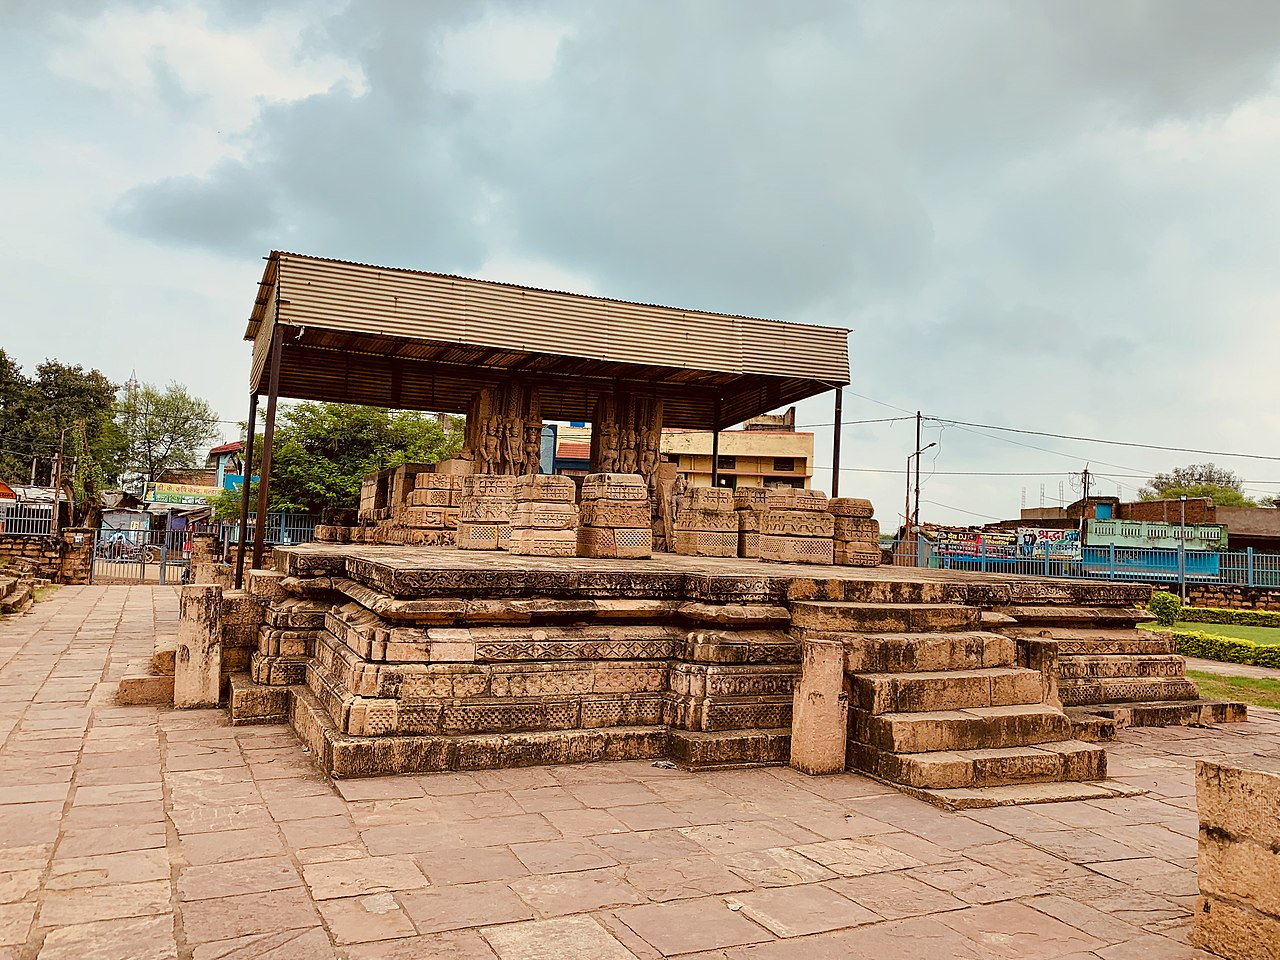 Seek Blessings Of The Almighty At The Shiva Temples - Malhar, Chhattisgarh